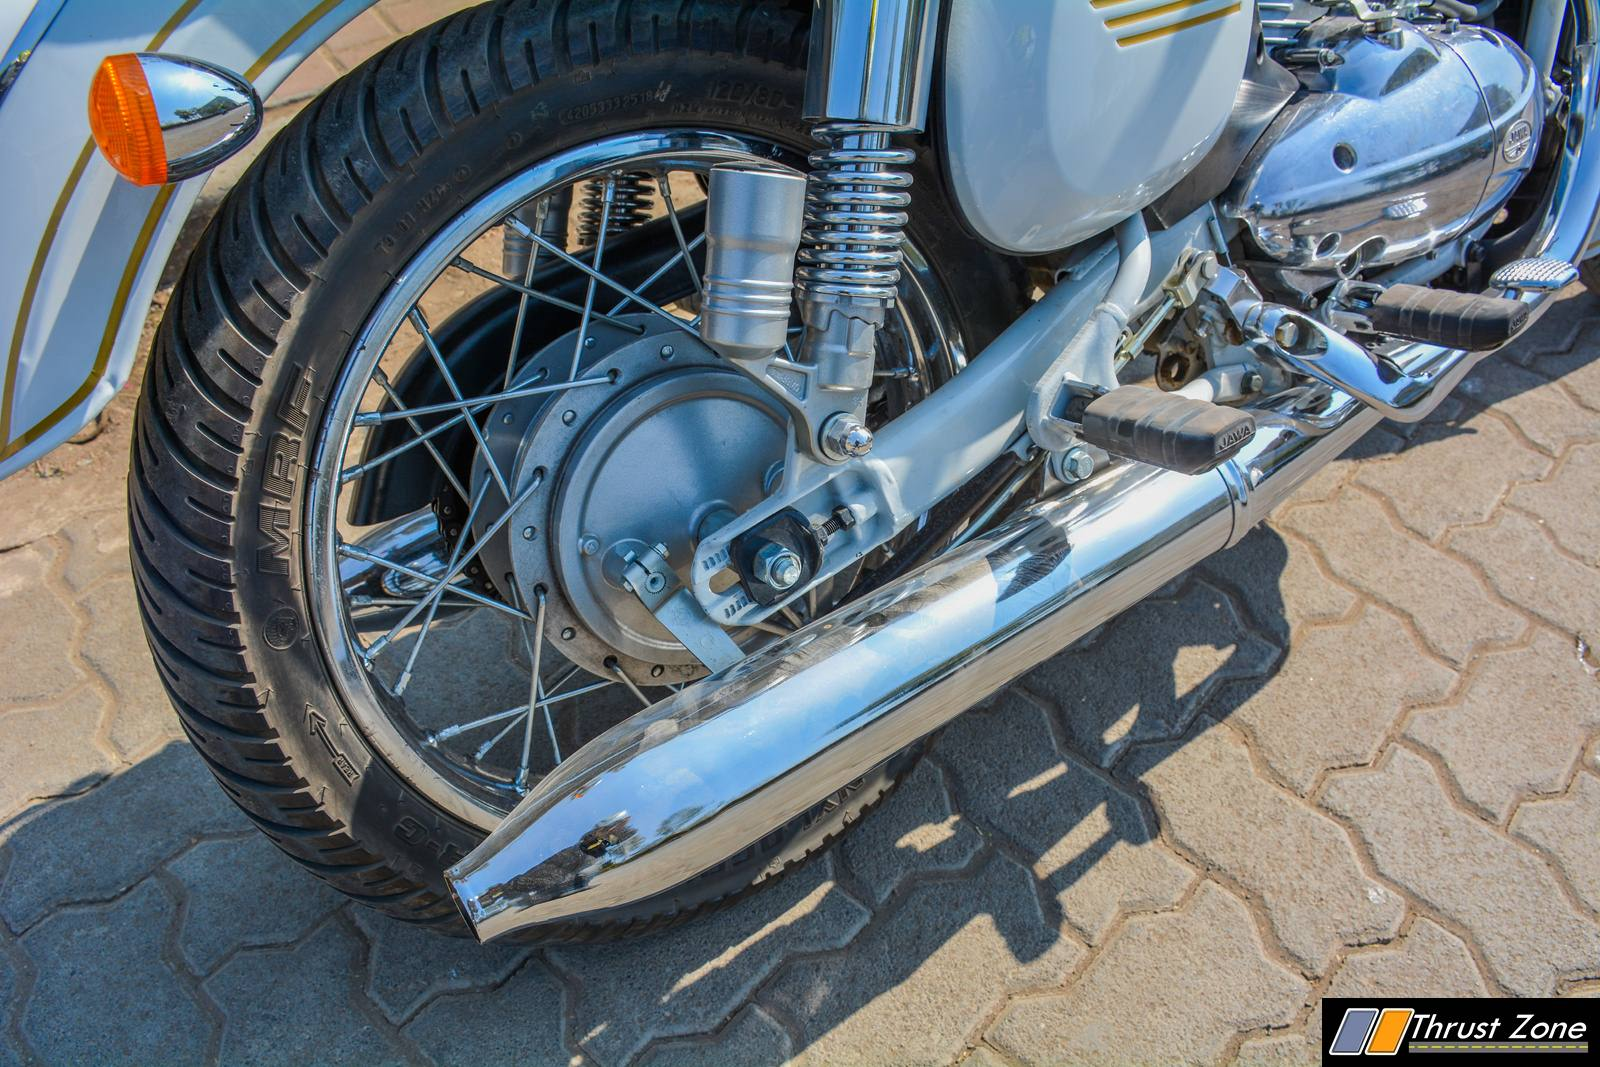 http://www.thrustzone.com/wp-content/uploads/2019/01/jawa-300-classic-india-review-1.jpg